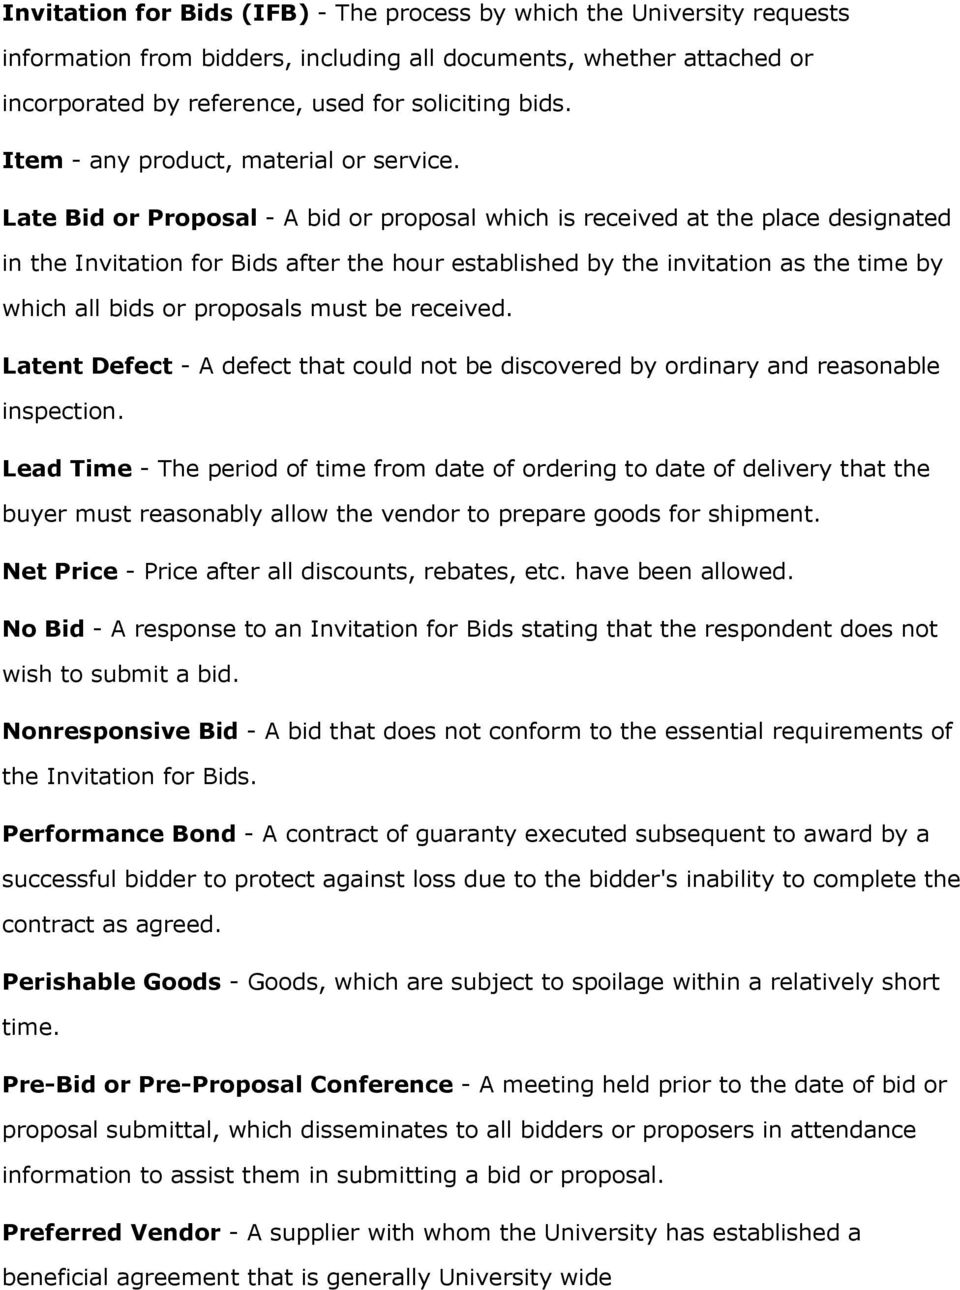 Late Bid or Proposal - A bid or proposal which is received at the place designated in the Invitation for Bids after the hour established by the invitation as the time by which all bids or proposals